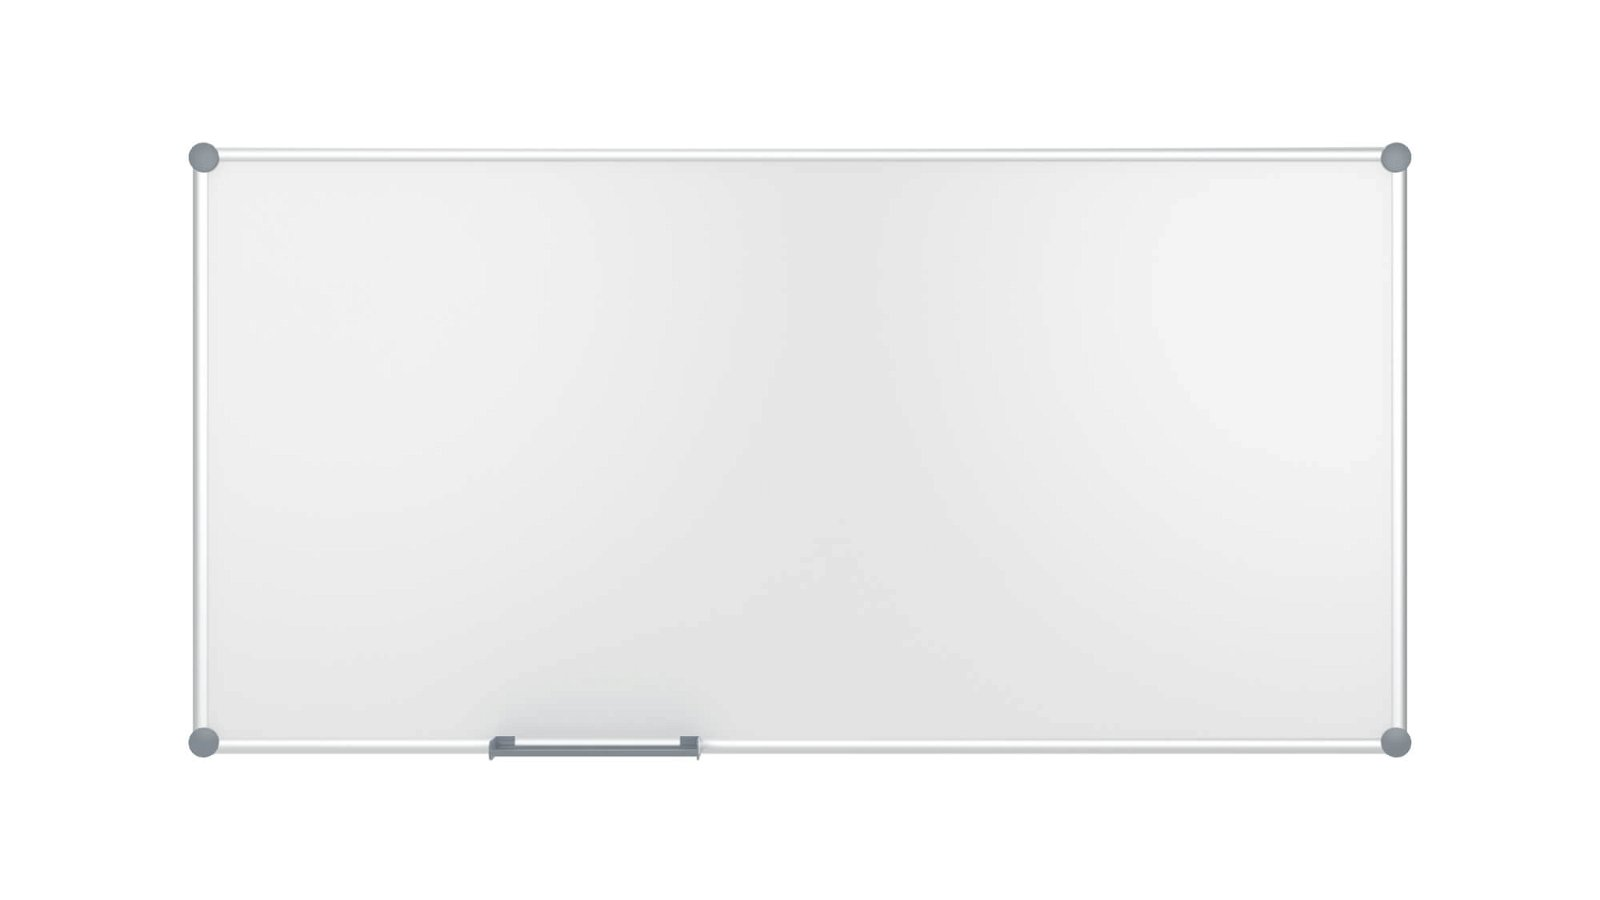 Whiteboard 2000 MAULpro, Emaille, 90x180 cm, grau